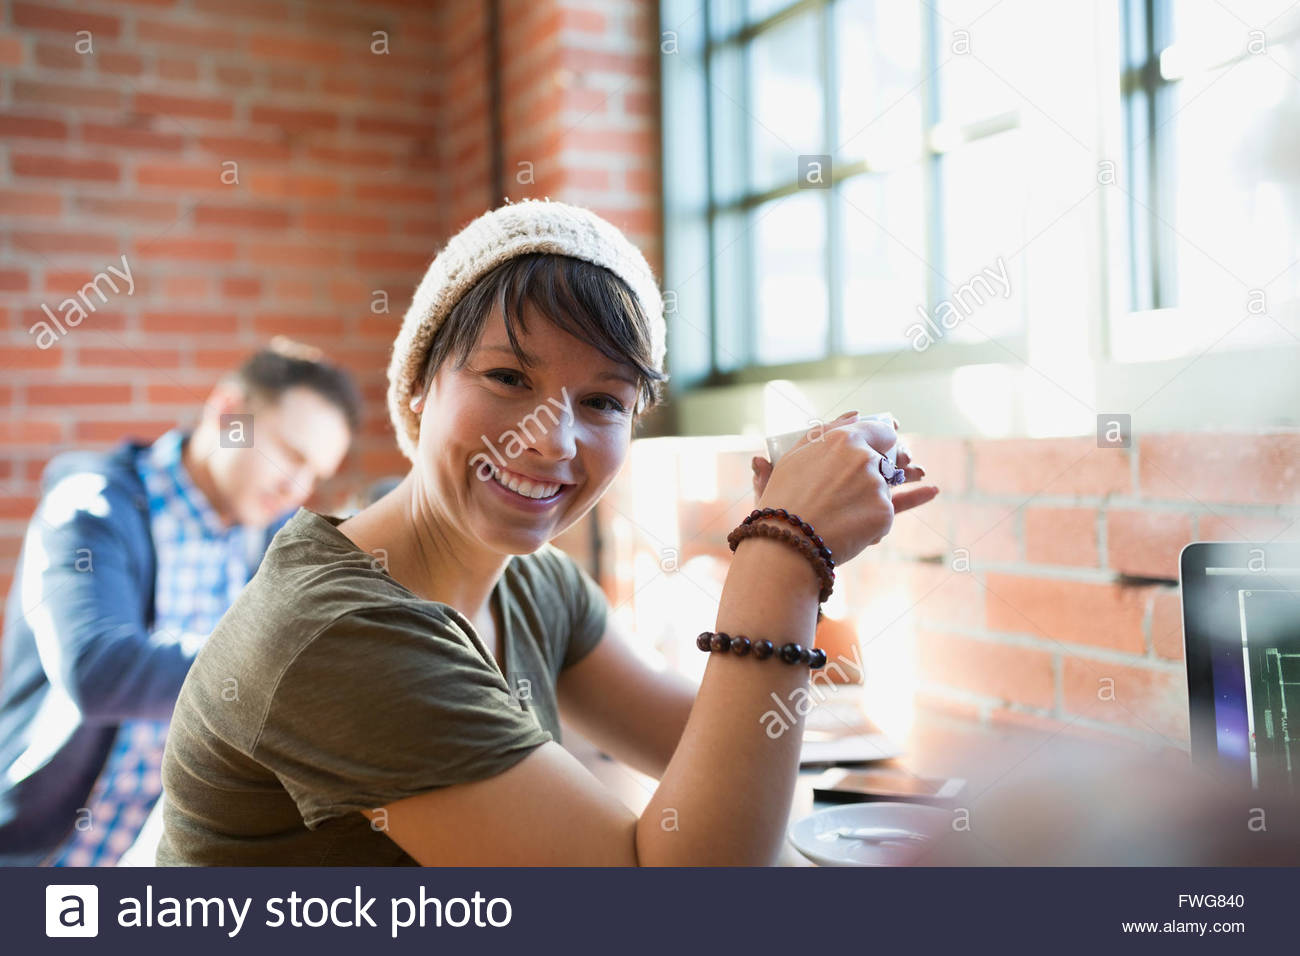 Portrait of smiling woman drinking coffee in coffee shop Photo Stock